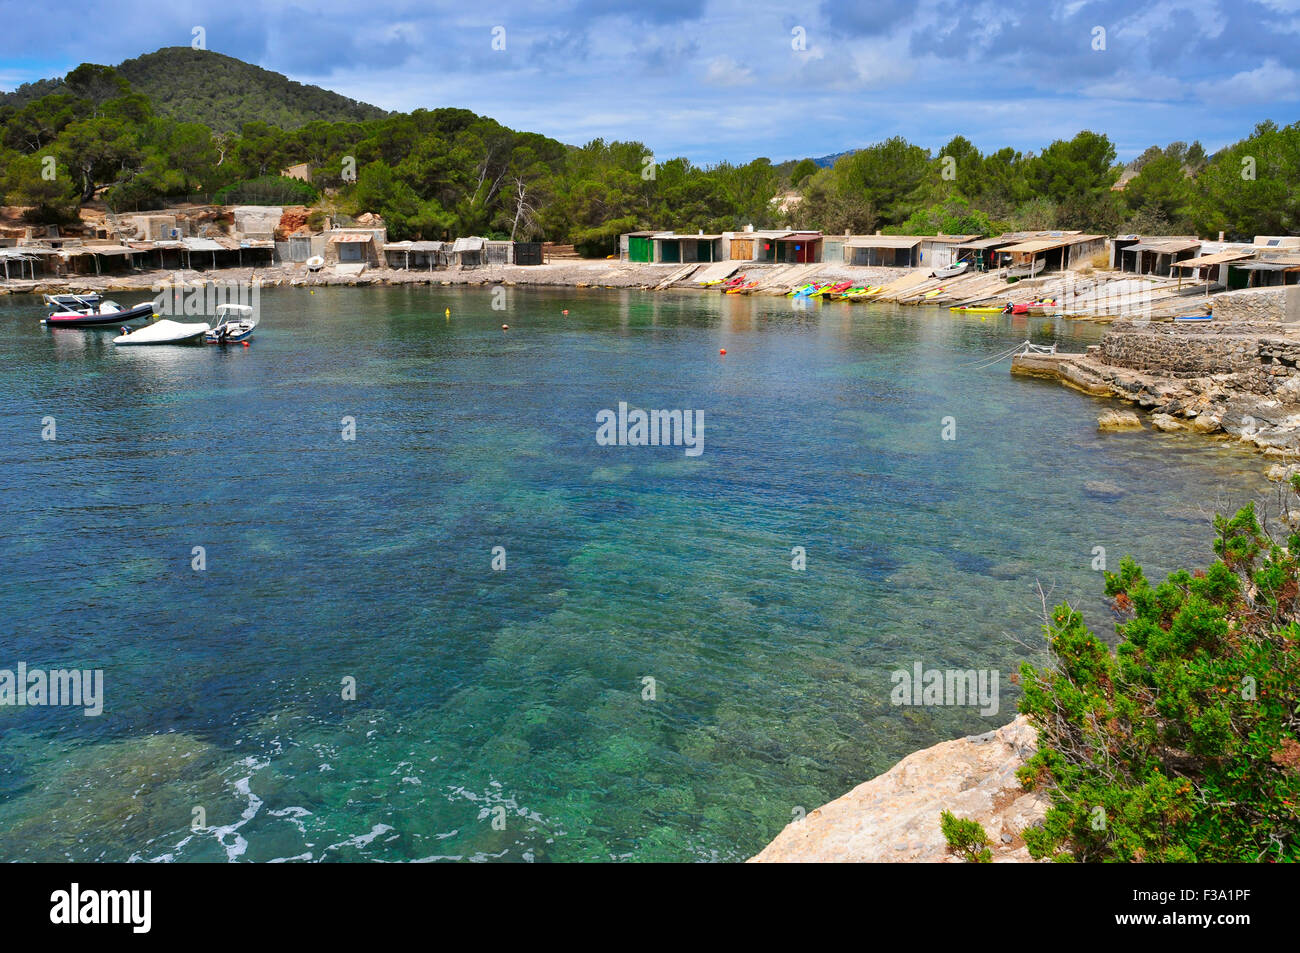 a view of the Sa Caleta cove in Ibiza Island, Spain, with its traditional fishermen shelters - Stock Image